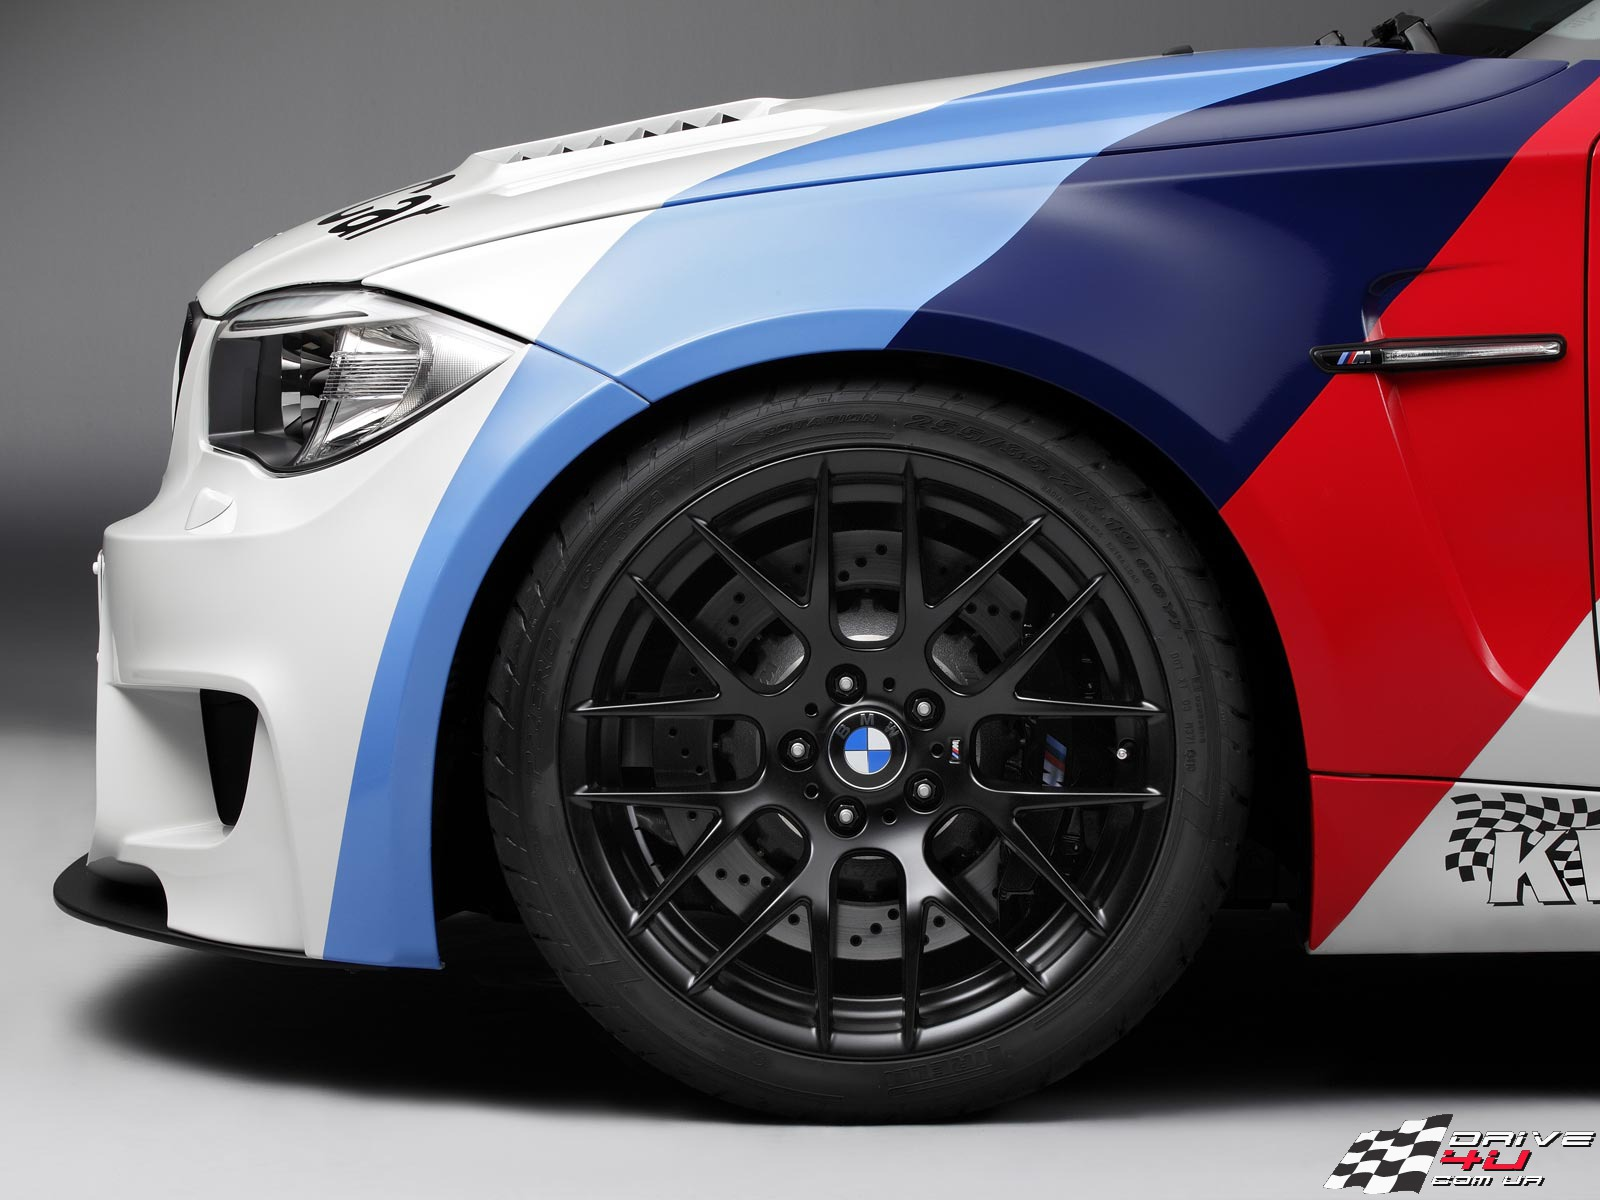 2019 BMW 1 Series M Coupe MotoGP Safety Car photo - 5